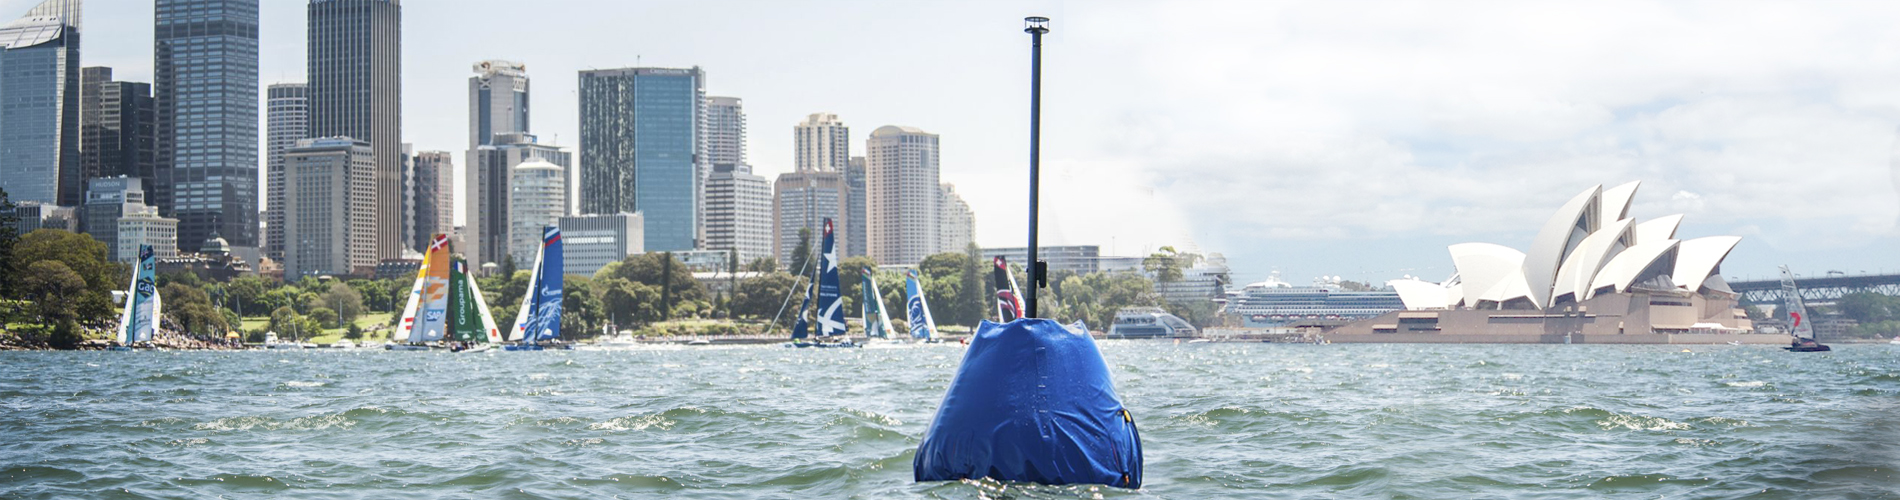 WindBot on a buoy during a race with Sydney Opera House in the background